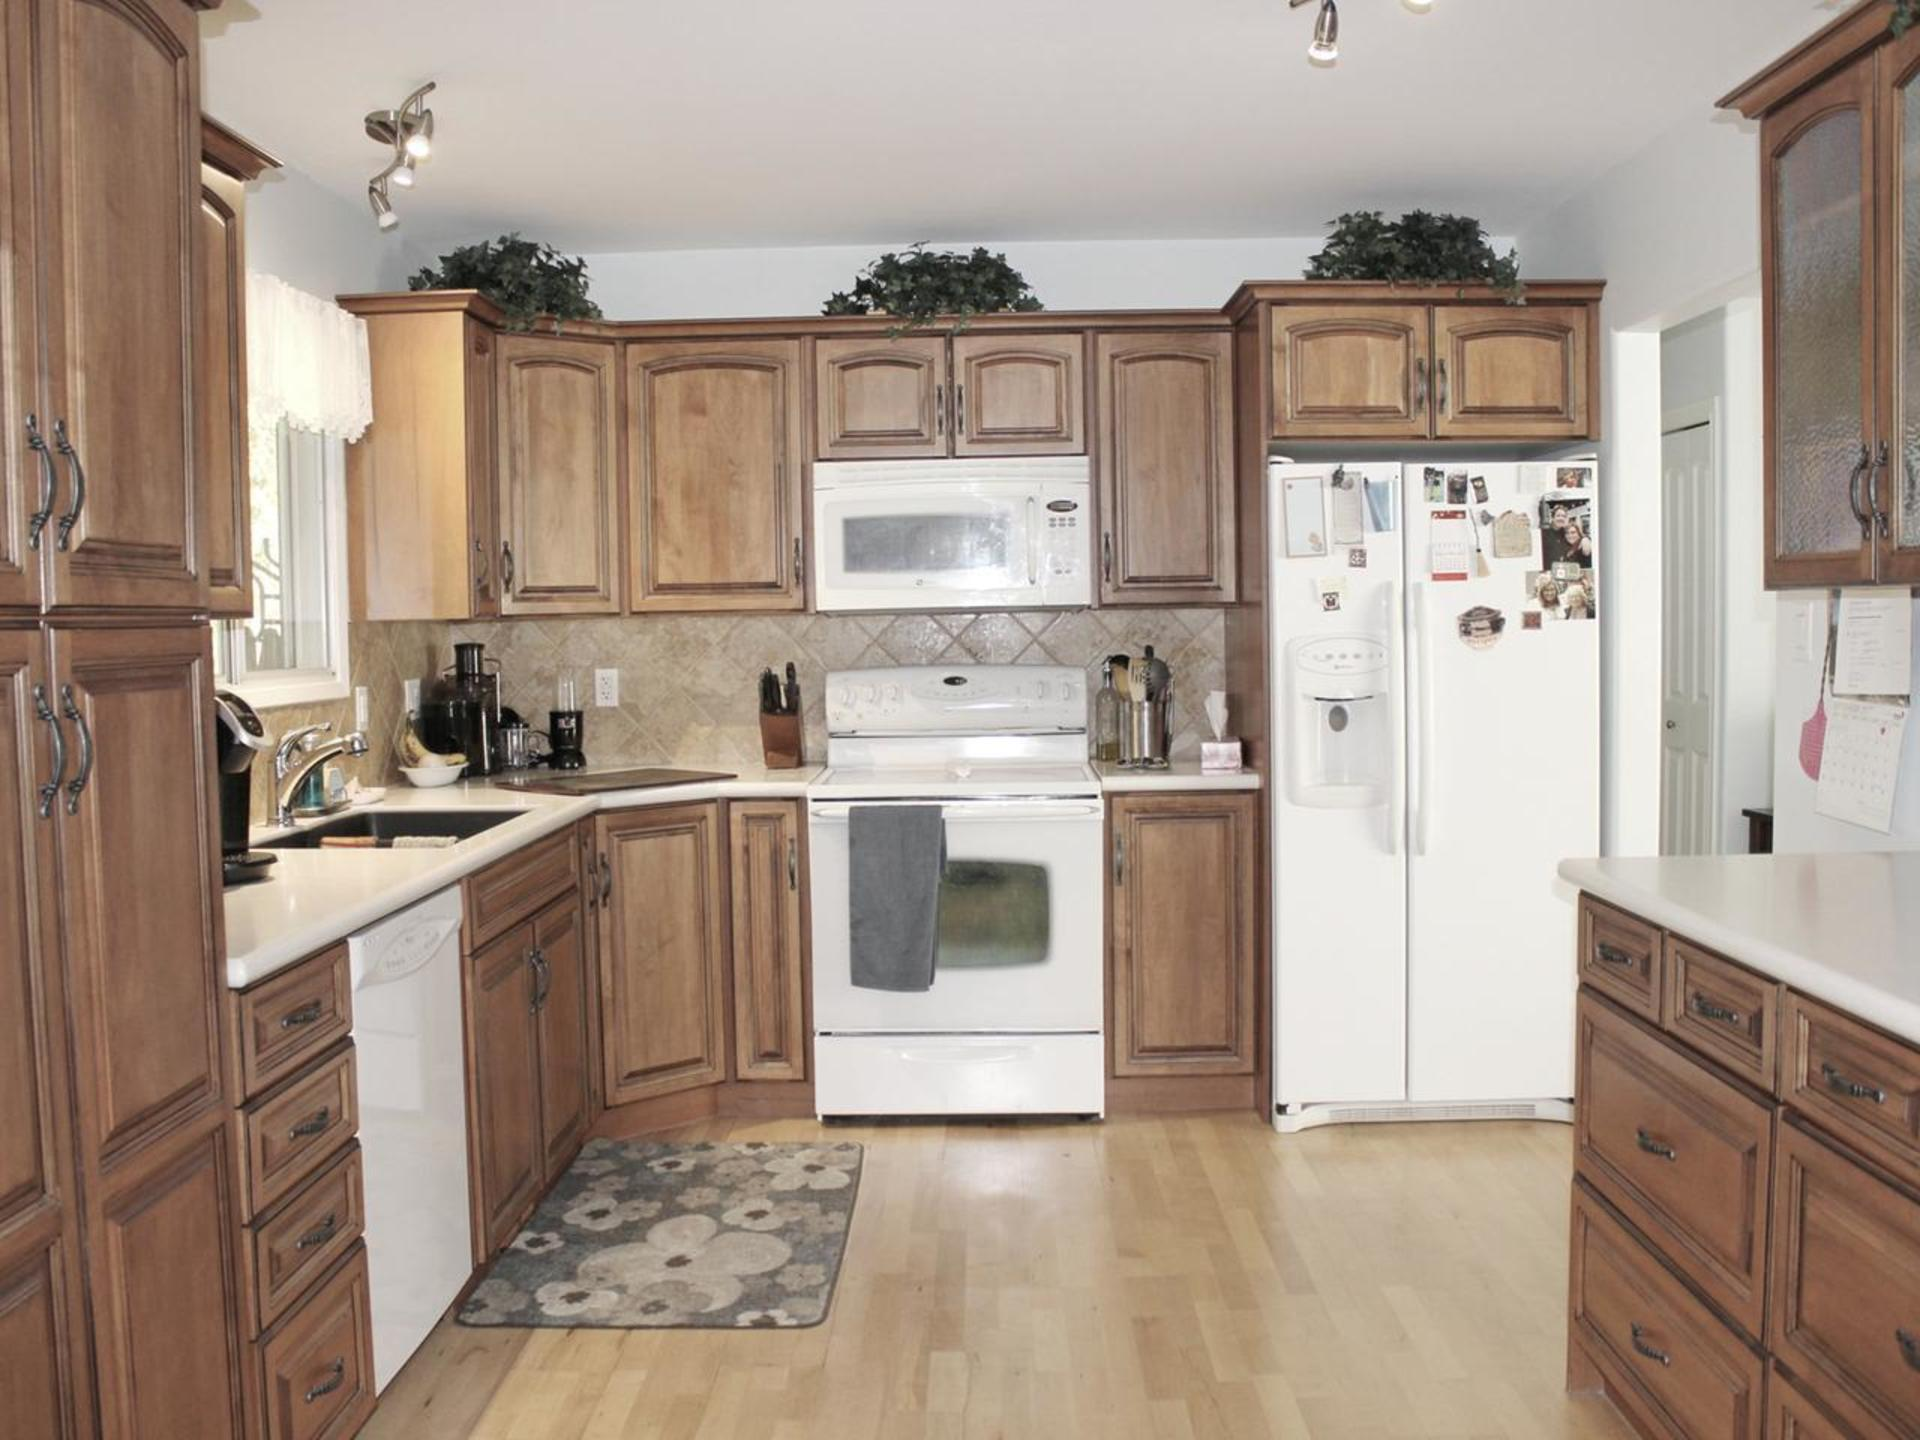 Kitchen at 114 Pineview Place, Wiltse/Valleyview, Penticton